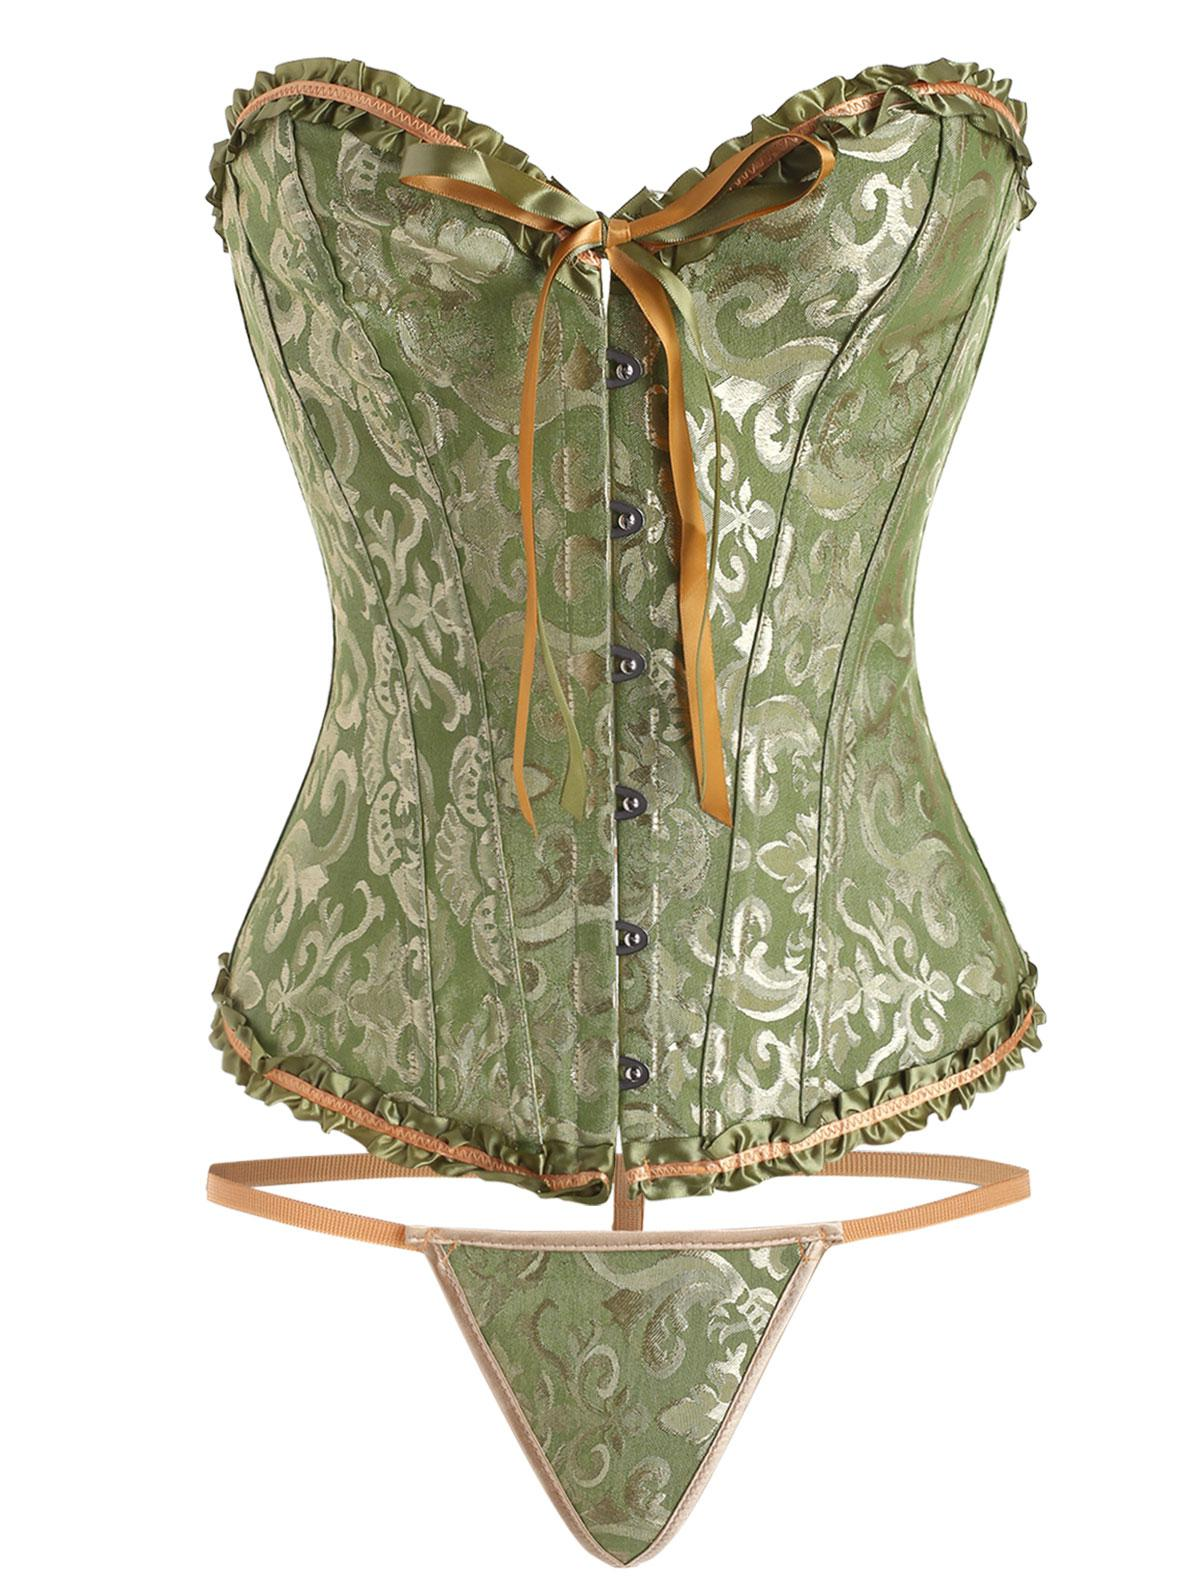 Jacquard Frilled Boning Overbust Corset with G-string